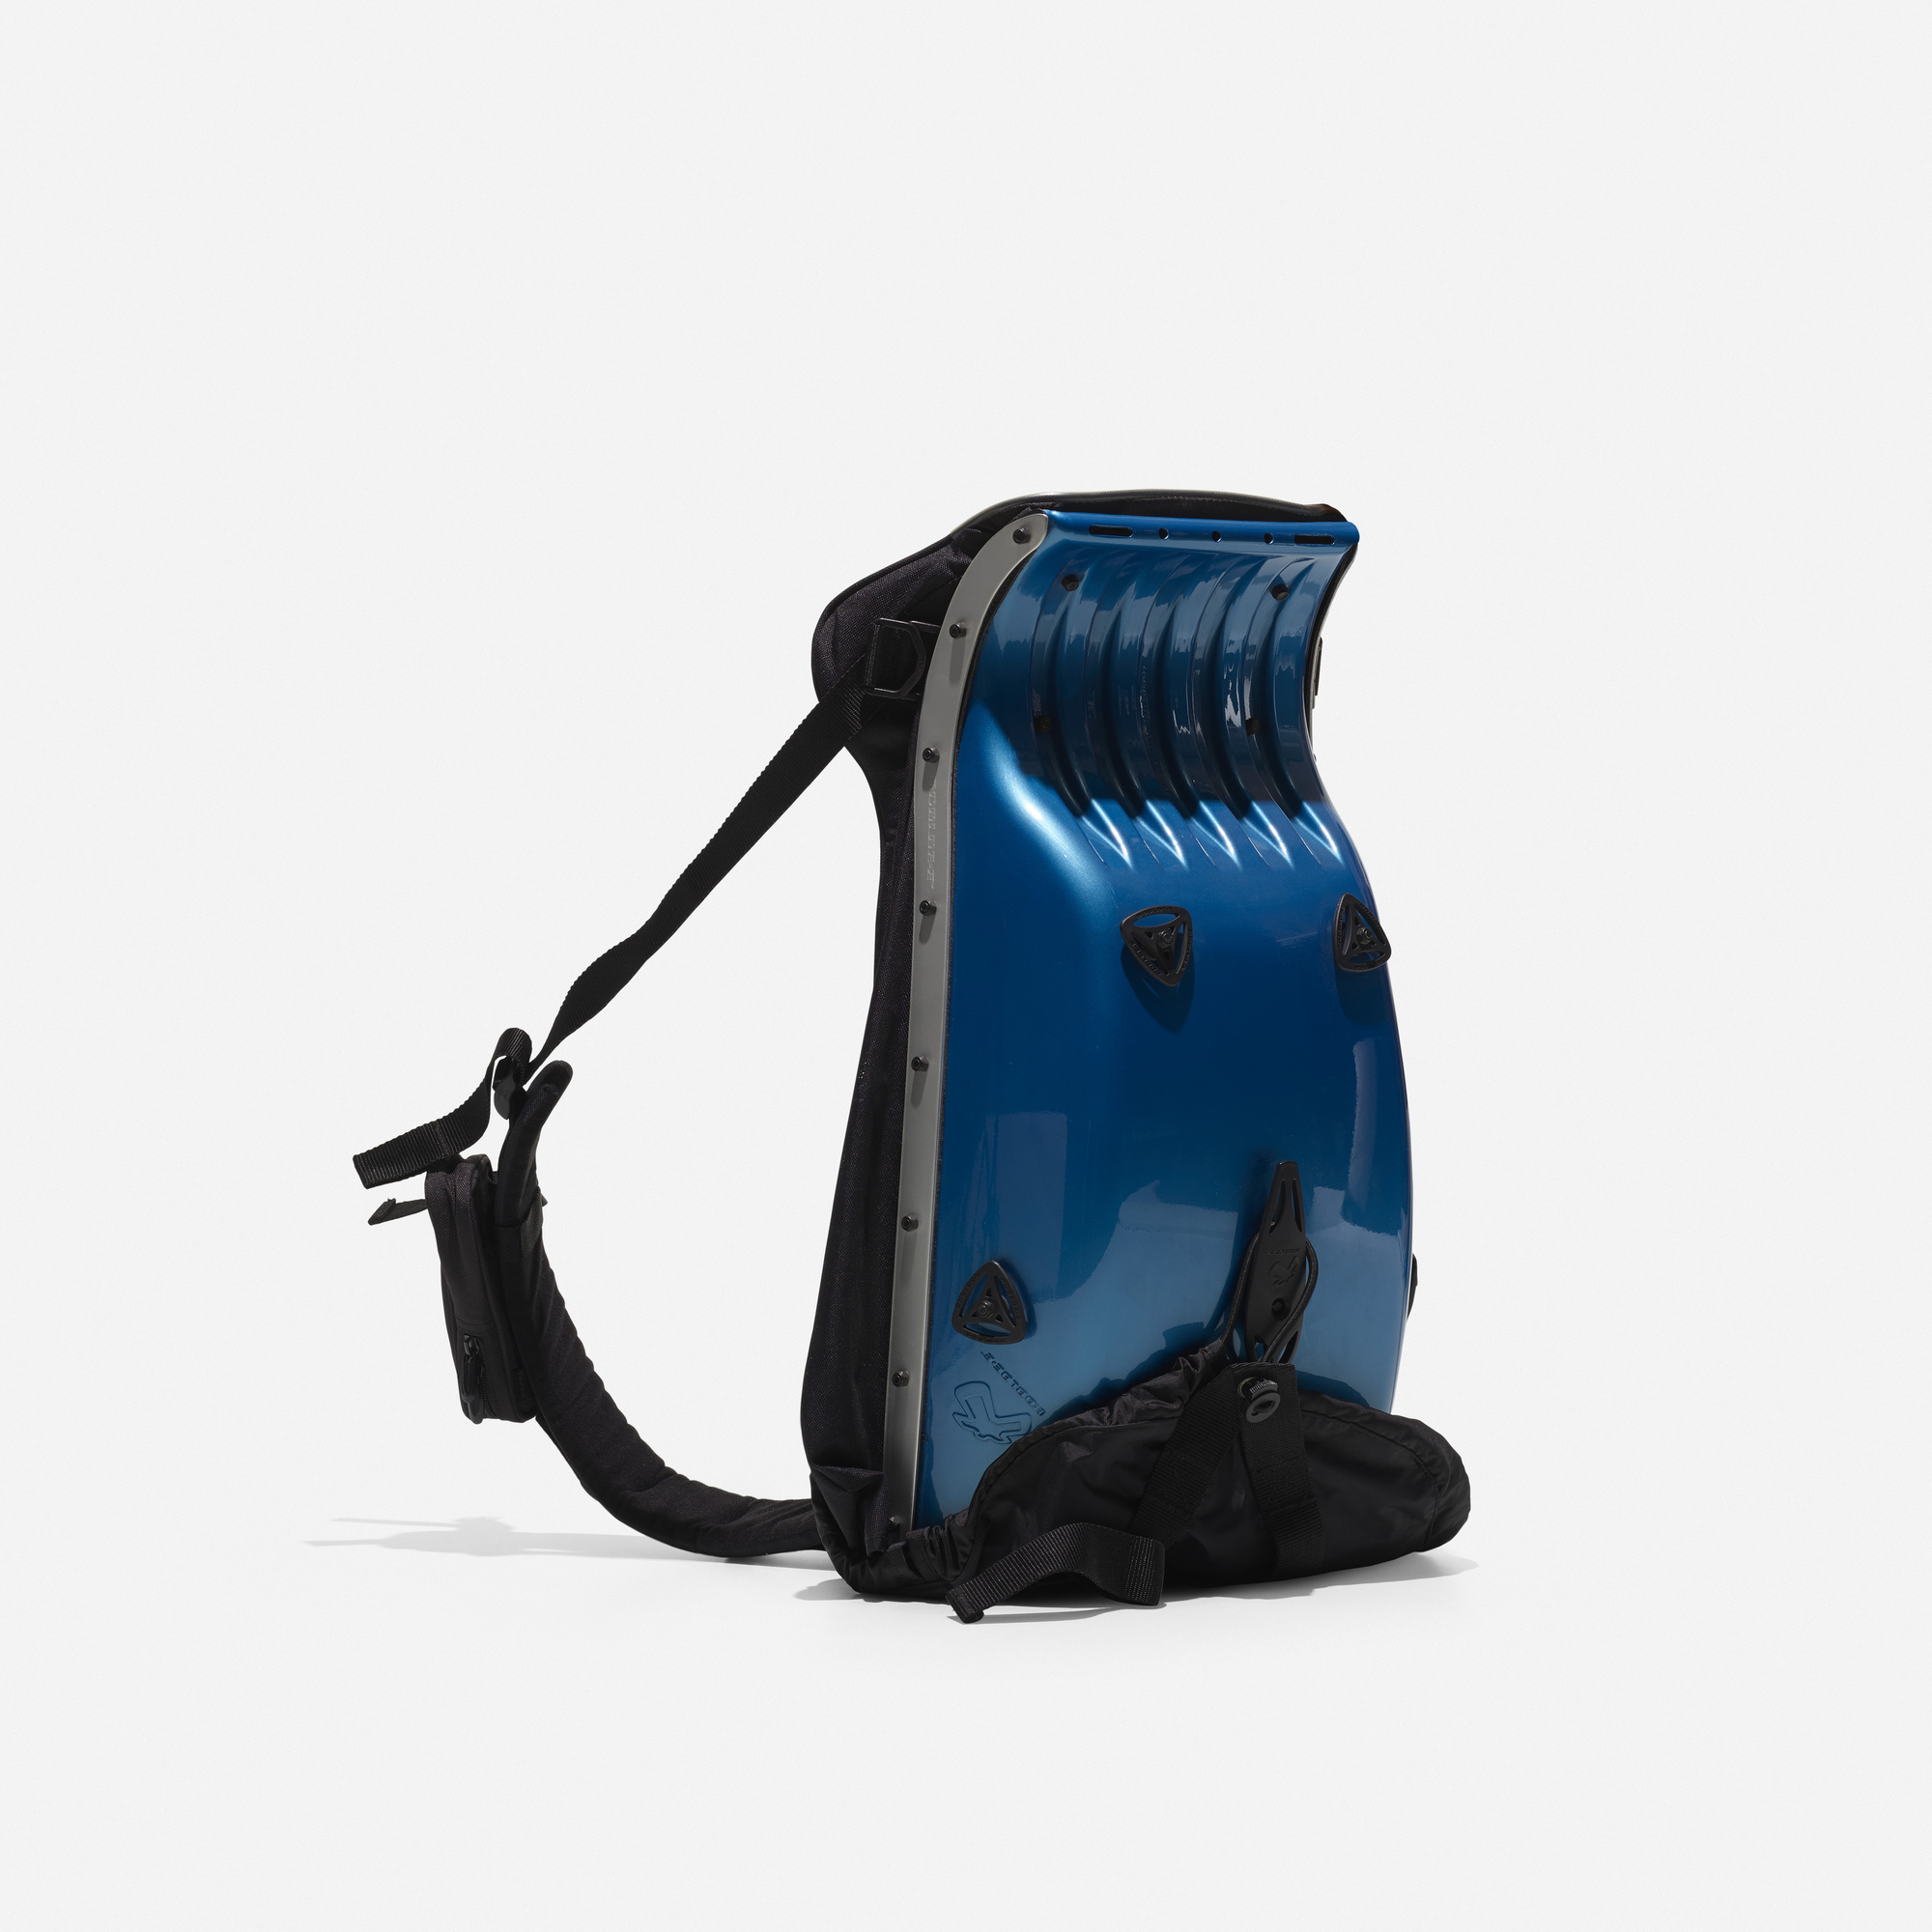 191: Boblbee / Megalopolis Sport backpack (1 of 3)